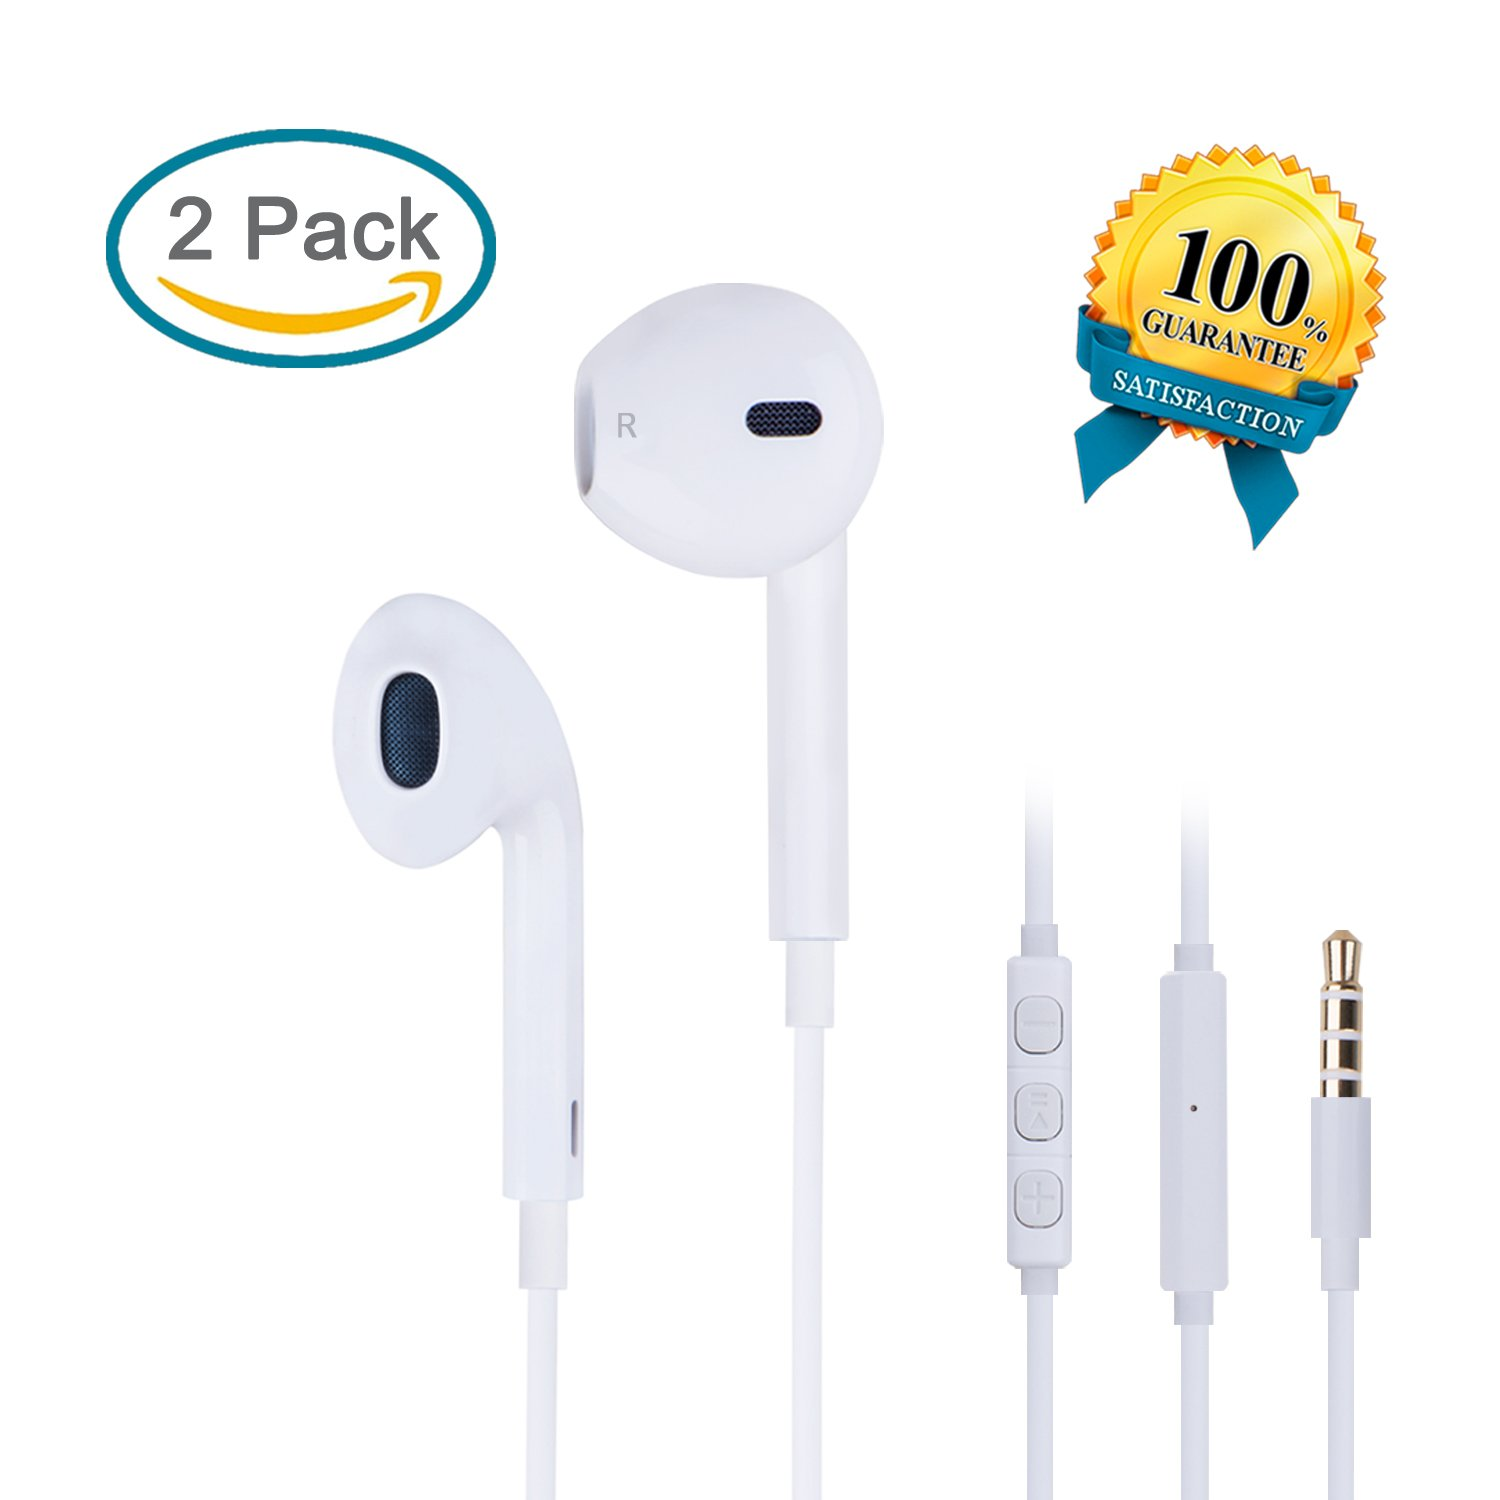 EverDigi 2 Pack Earphones Earbuds Headphones with Mic & Volume Control on the iOS and Android Devices - For iPhone 6 6s, 6 Plus, 6s plus, iPhone 5s 5c 5, iPad /iPod (White)